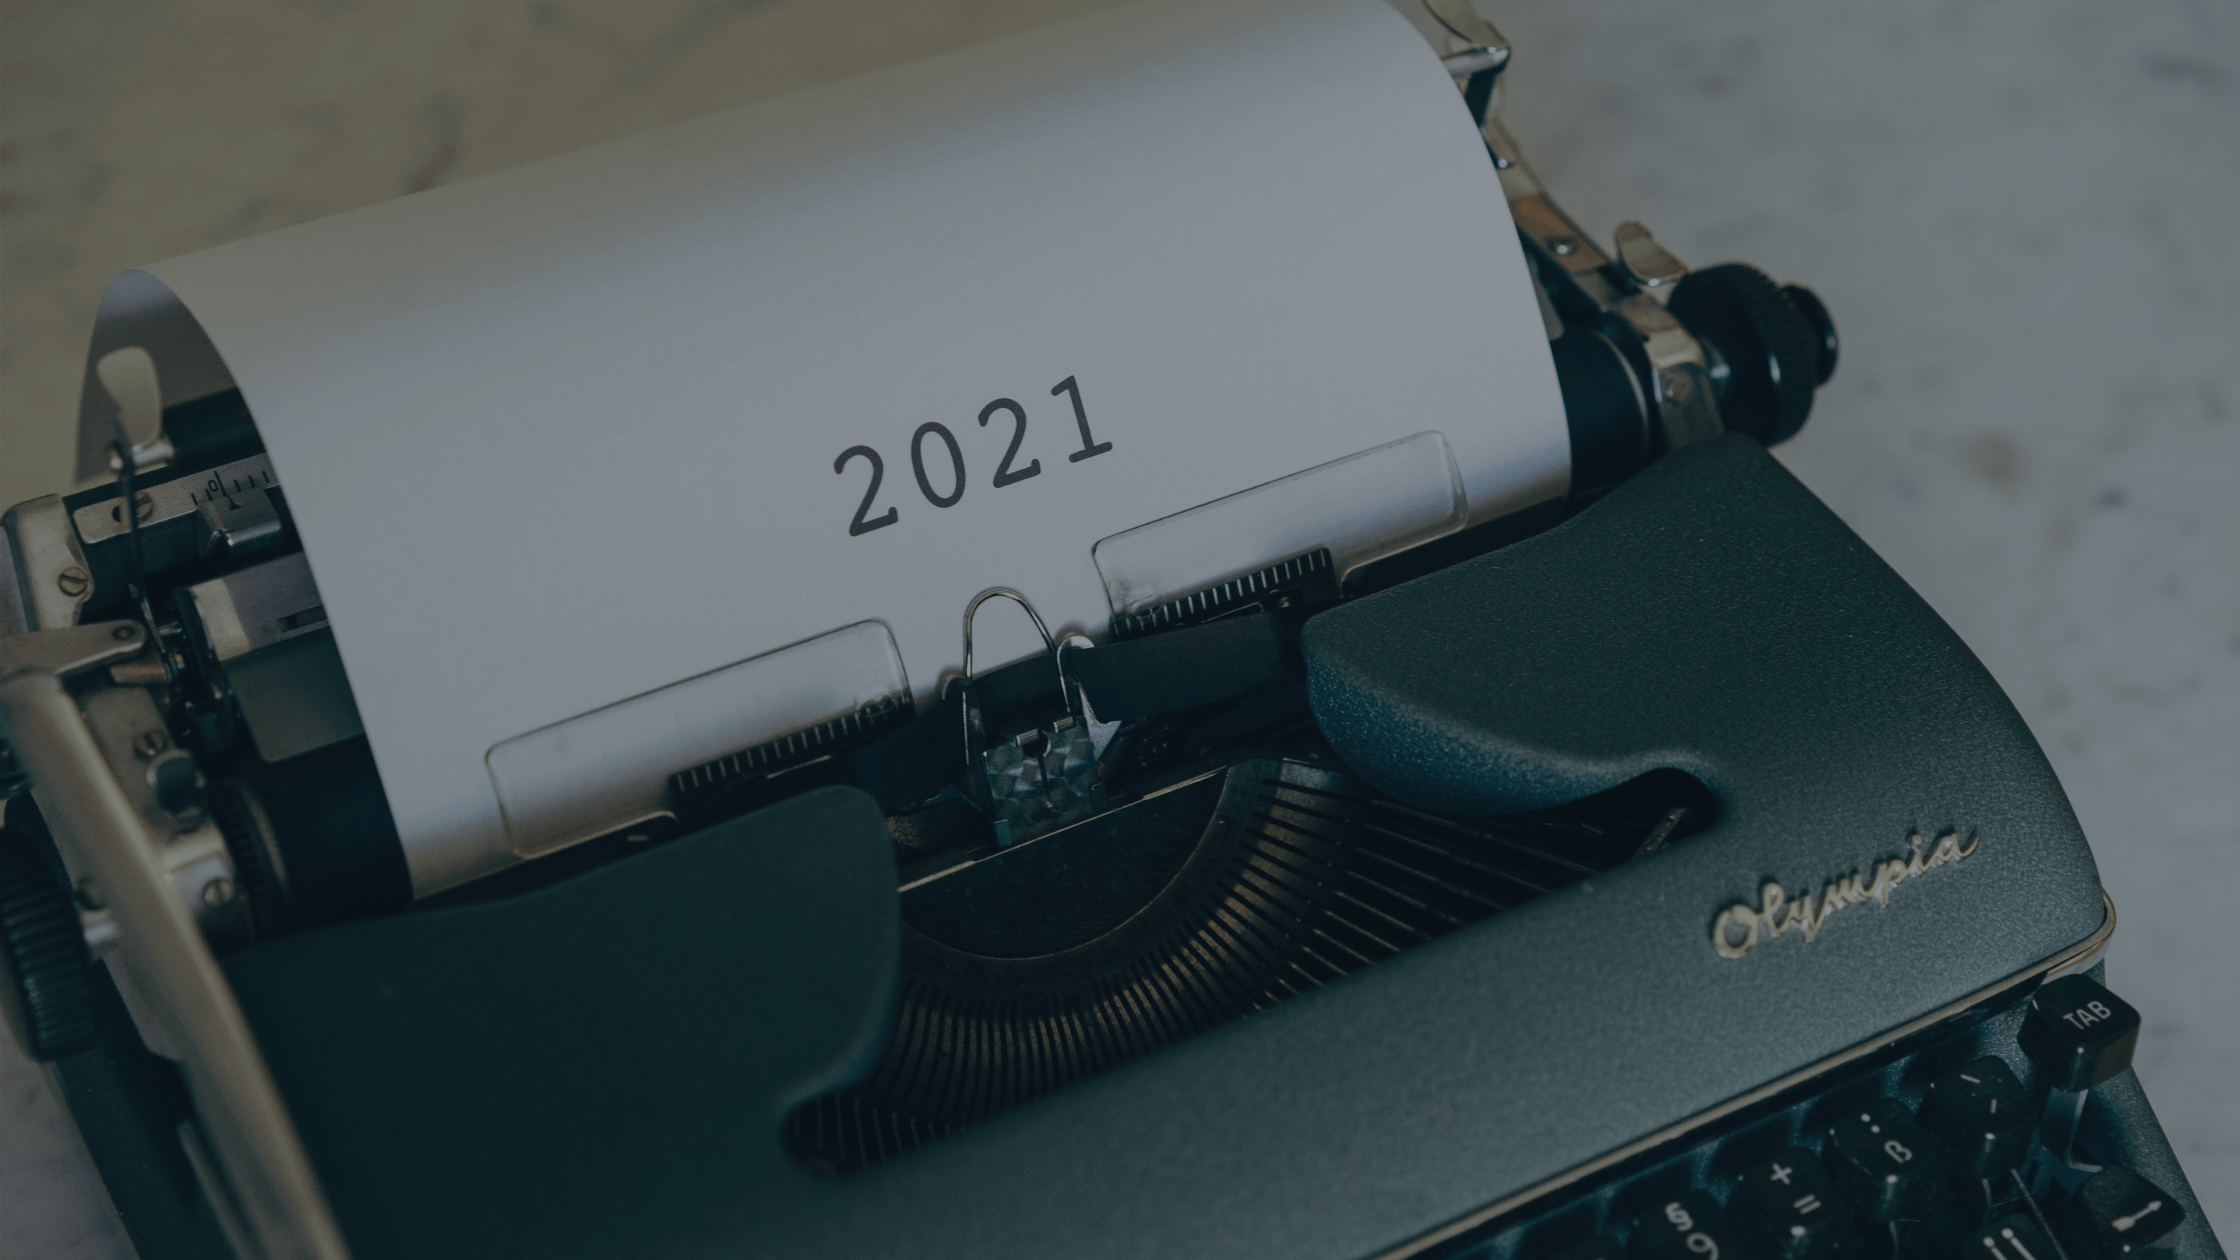 Typewriter with 2021 typed on the paper.